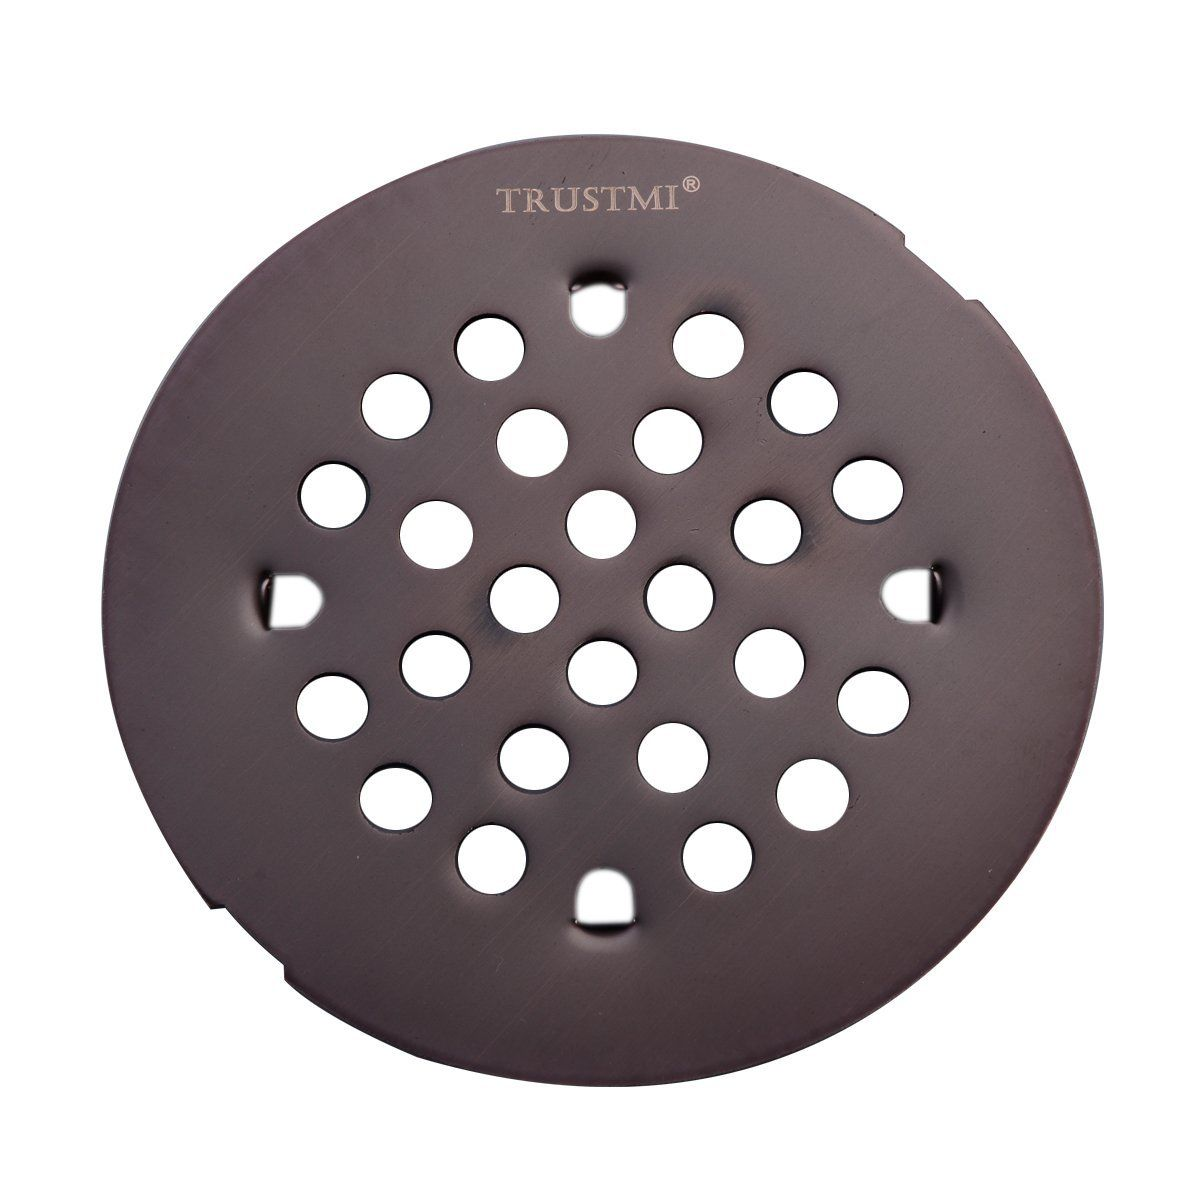 4 1 4 Inch Snap In Shower Drain Grate Oil Rubbed Bronze With